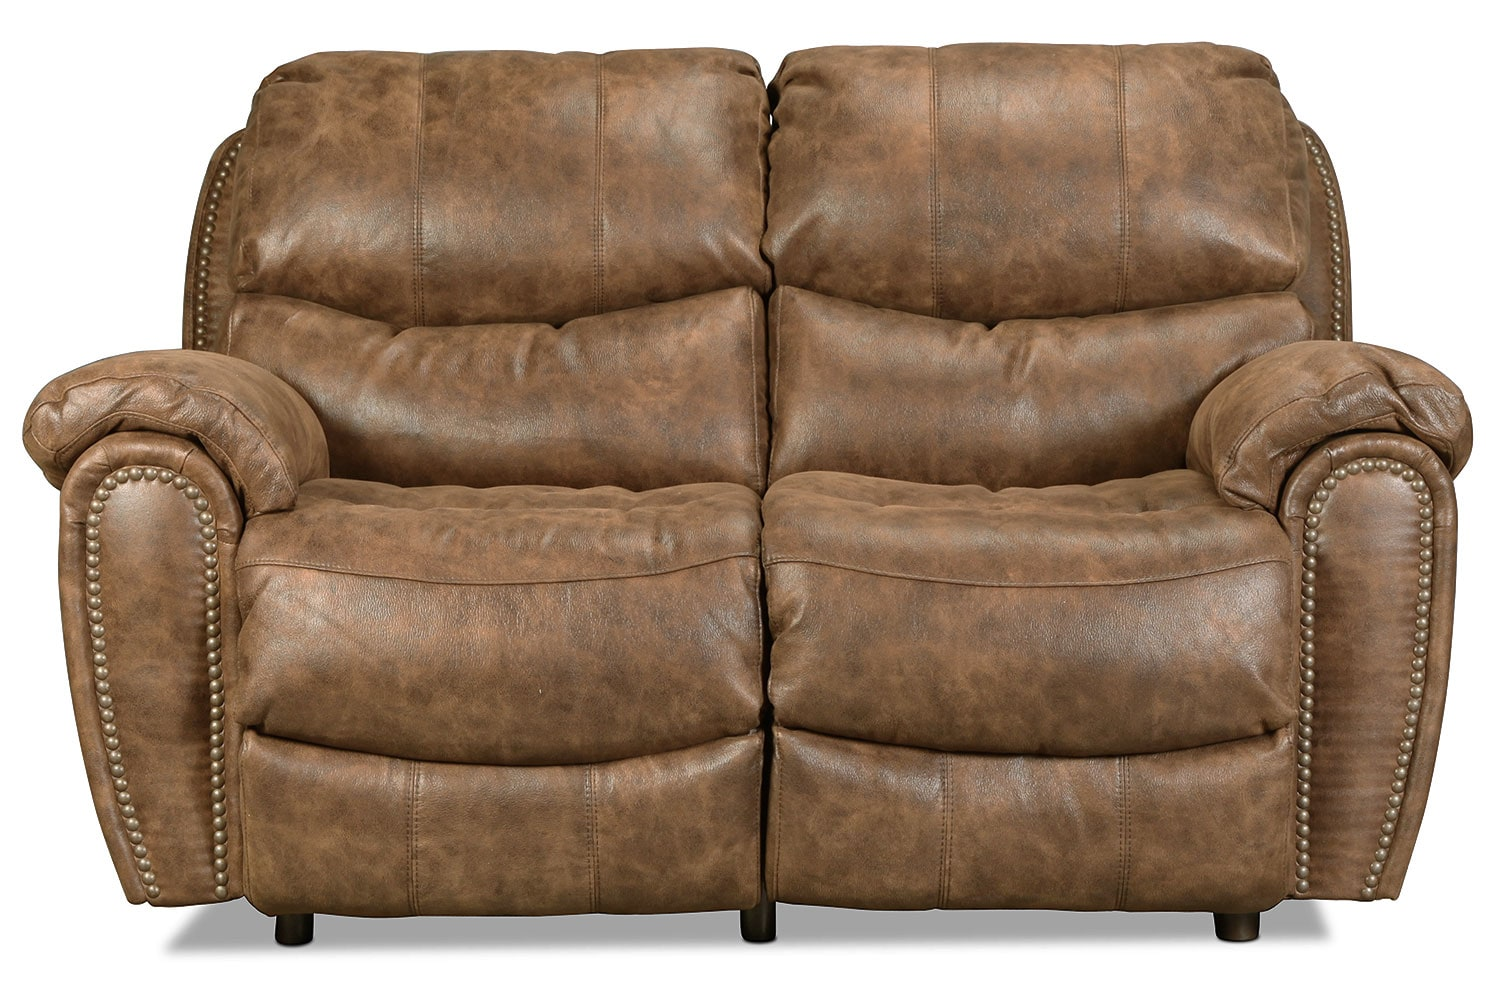 Chase Reclining Loveseat - Walnut